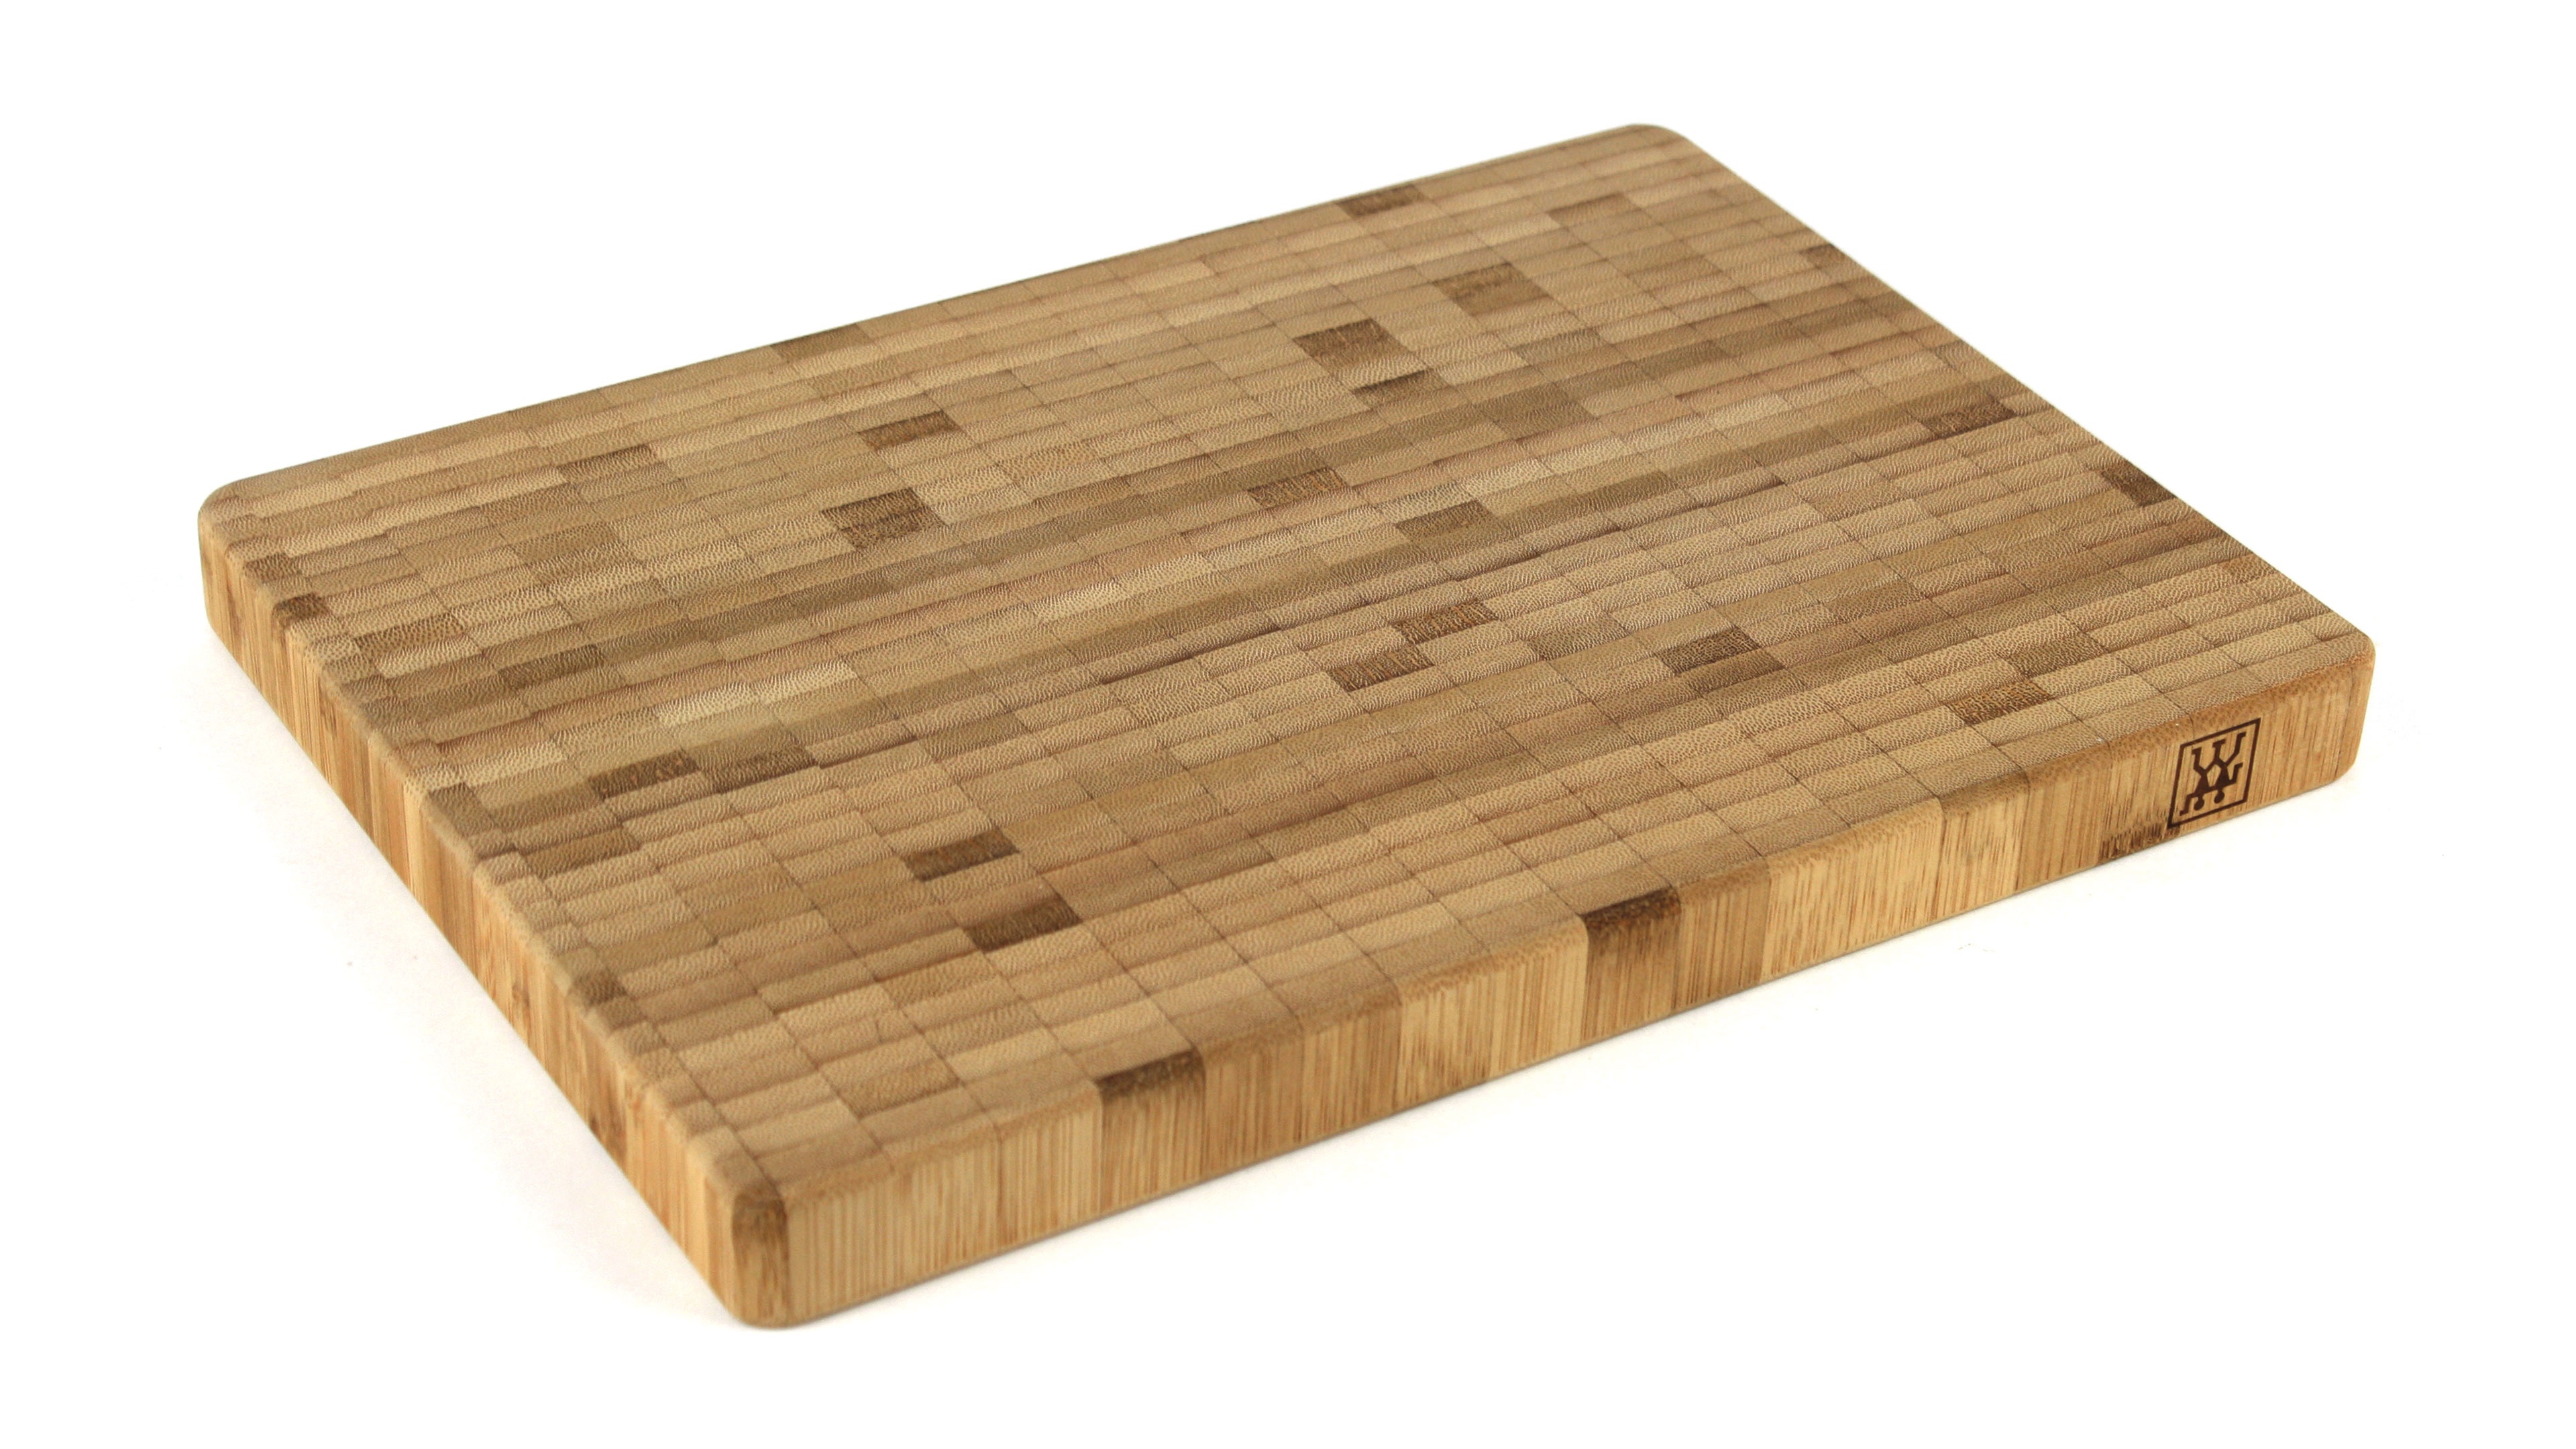 Zwilling J A Henckels Bamboo Cutting Board With Groove